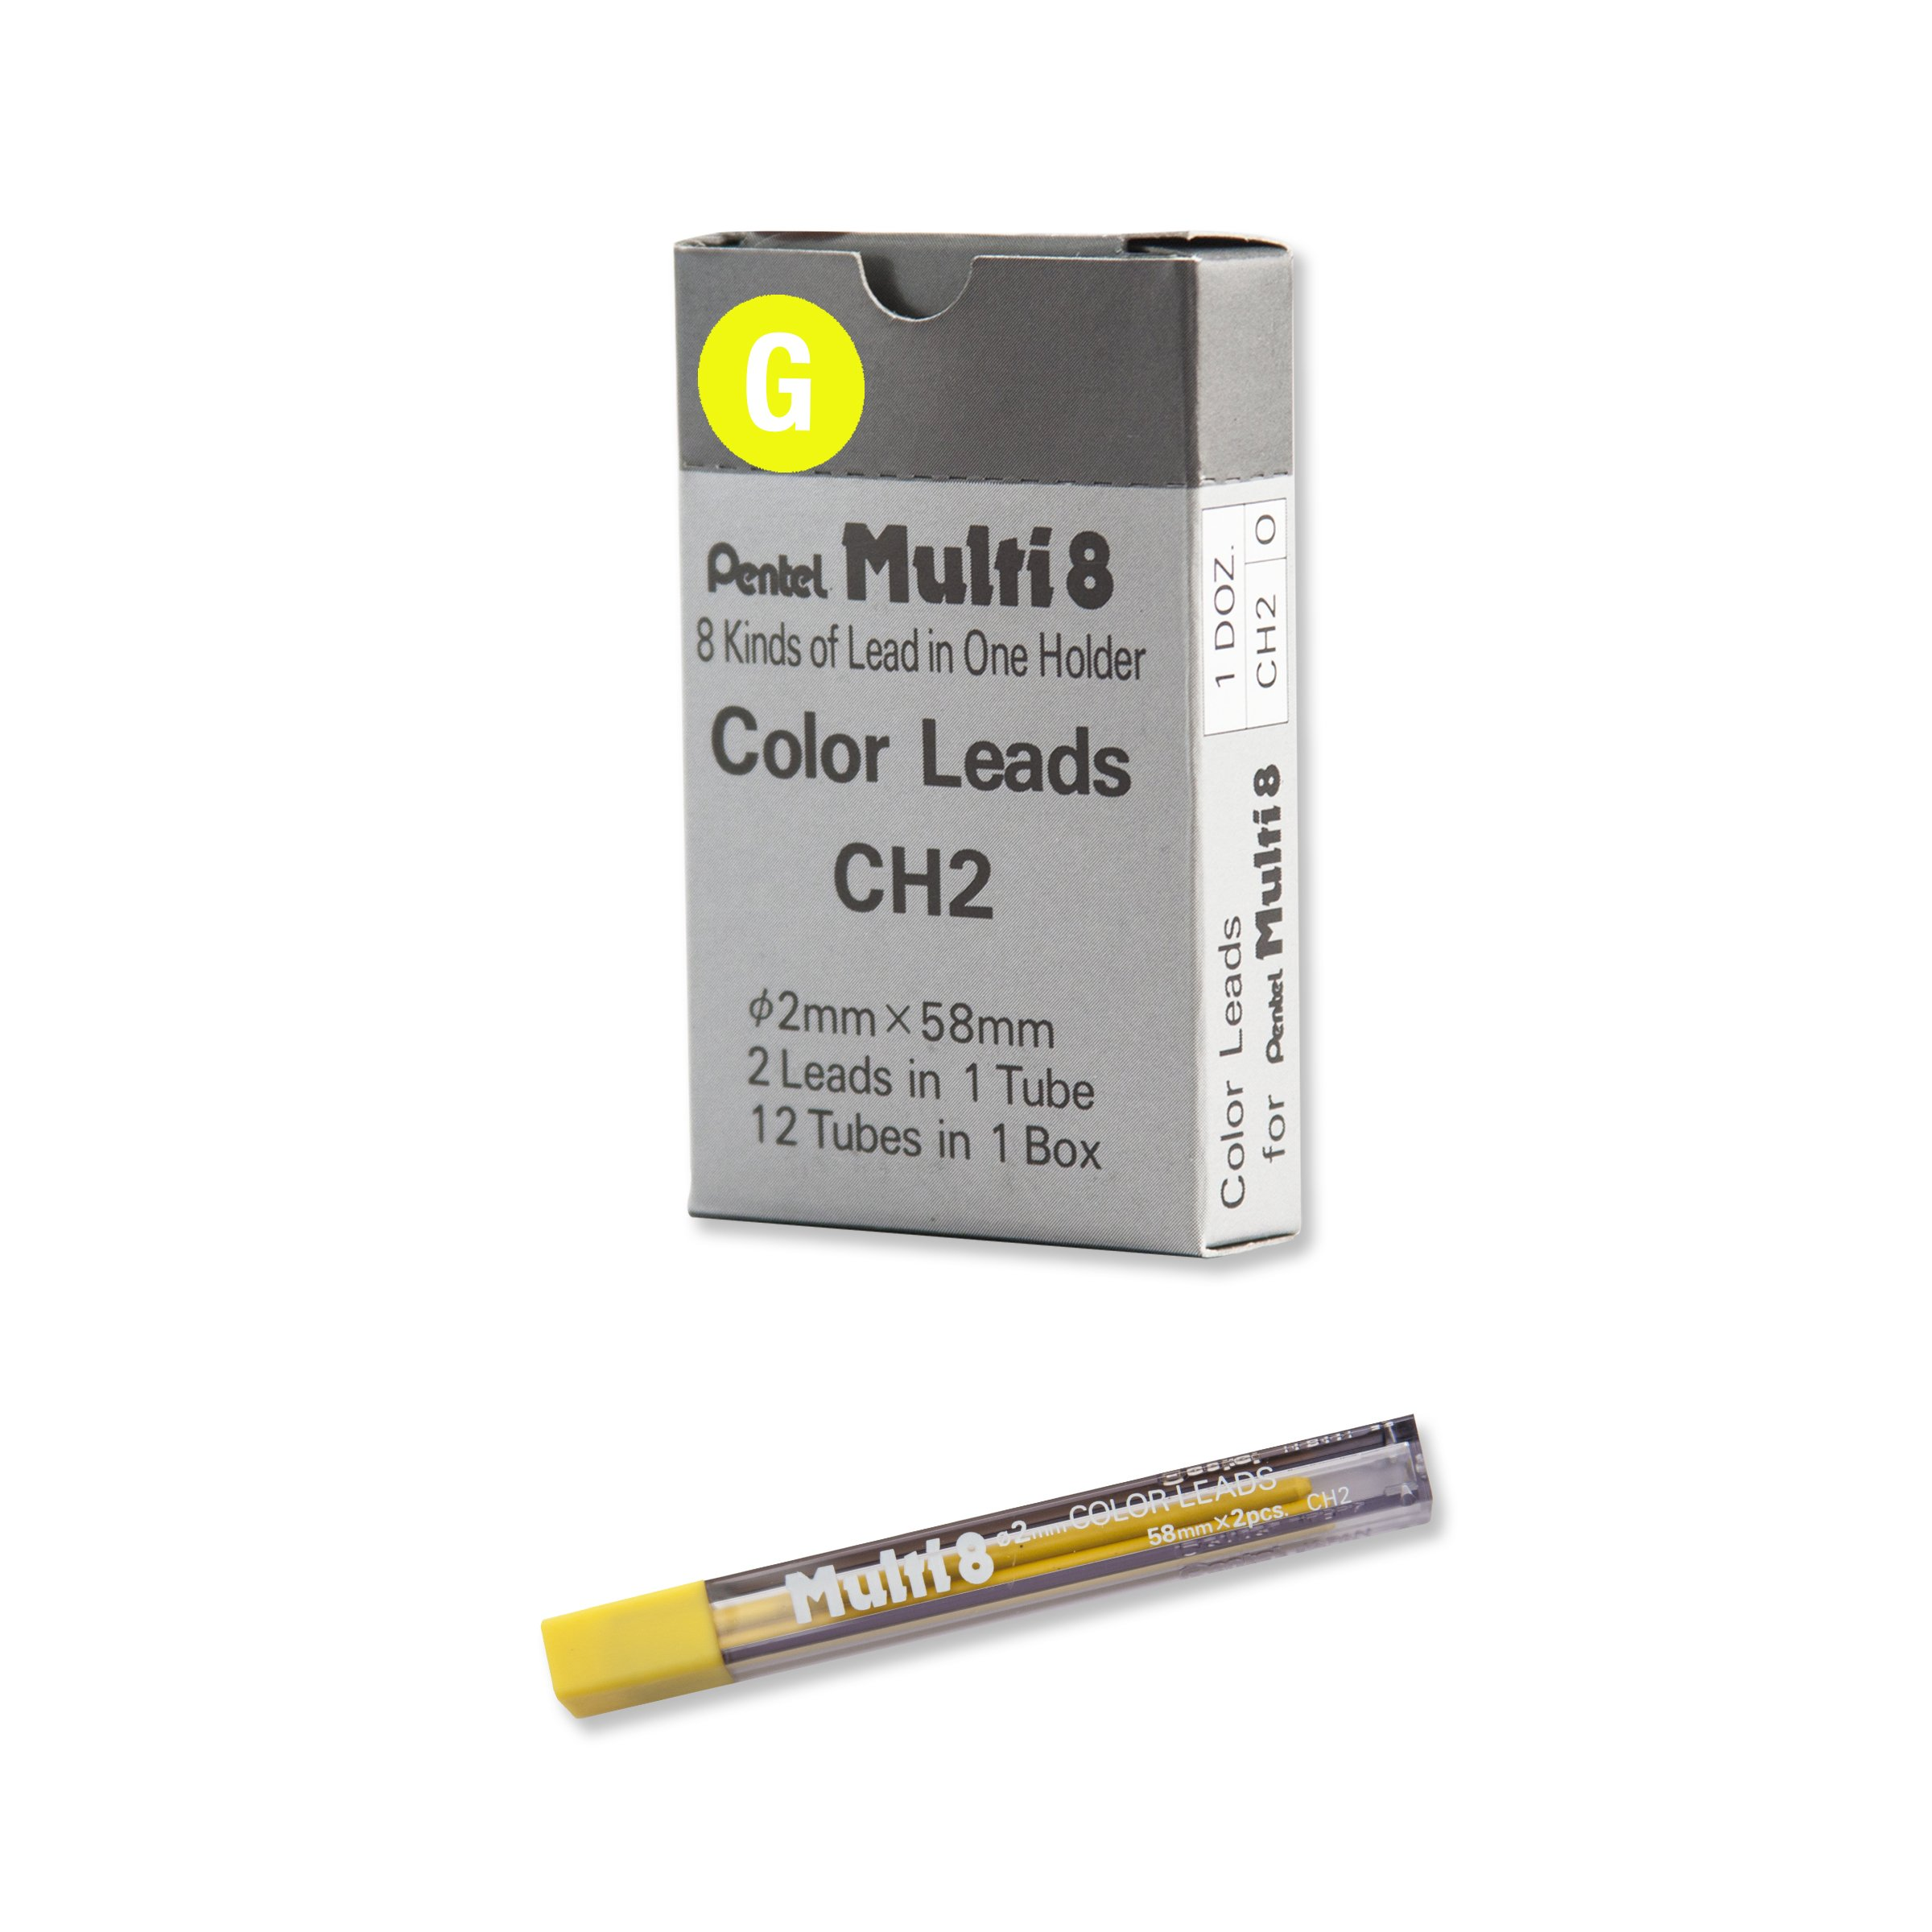 Pentel Arts 8 Colour Pencil Lead Refill, Yellow, 24 Pieces of Lead (CH2-G) by Pentel